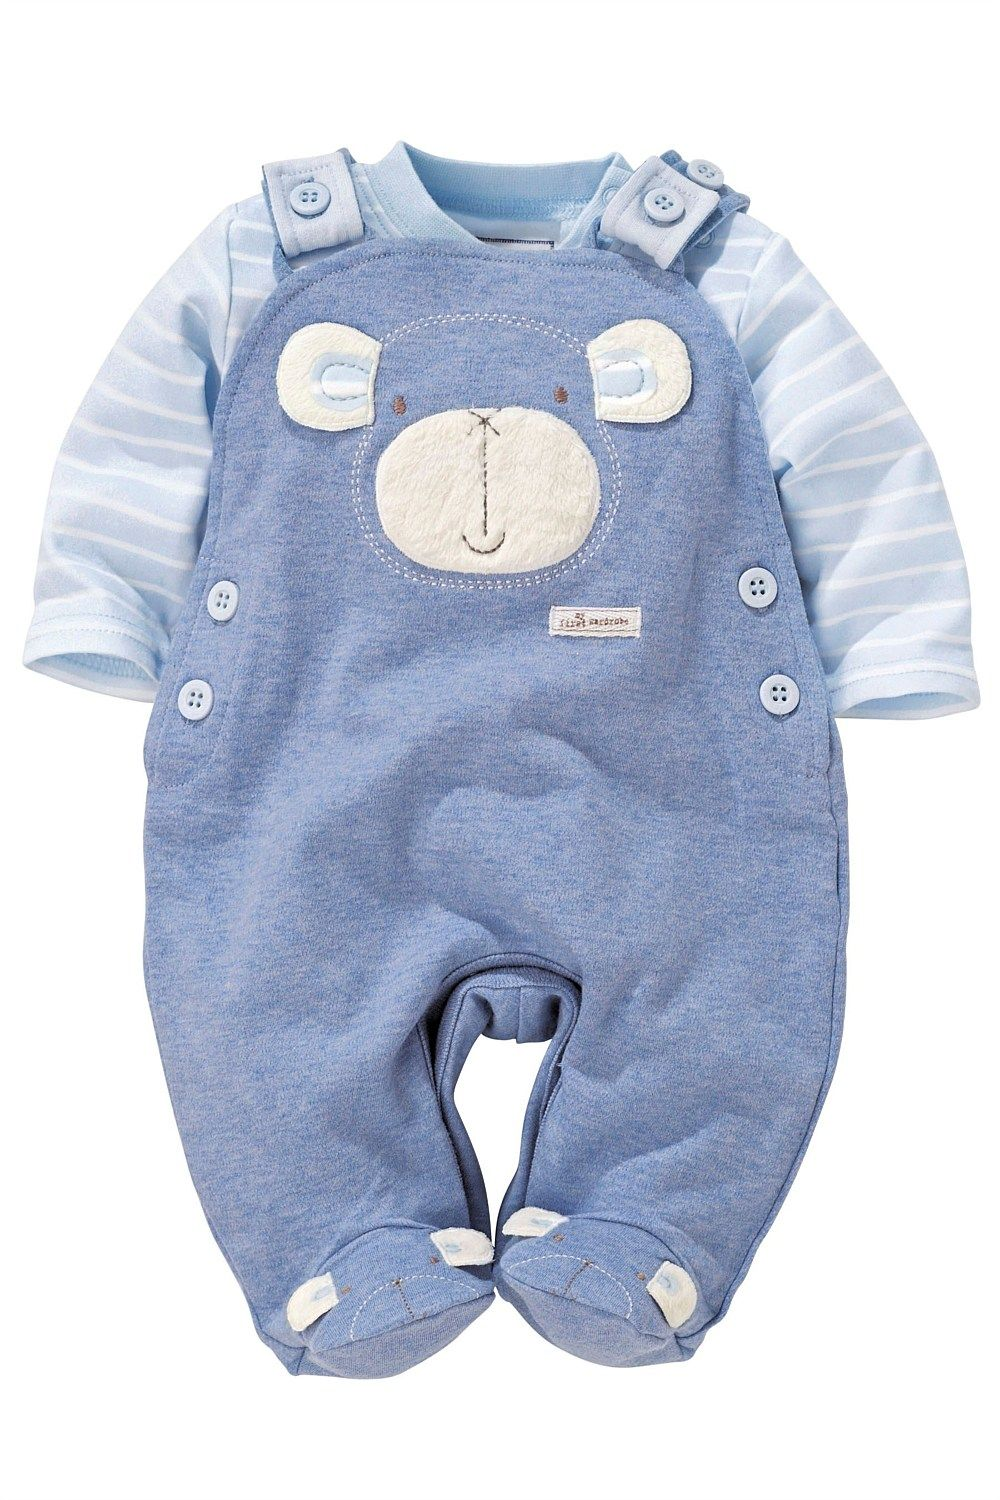 17a562a82 Newborn Clothing - Baby Clothes and Infantwear - Next Monkey ...